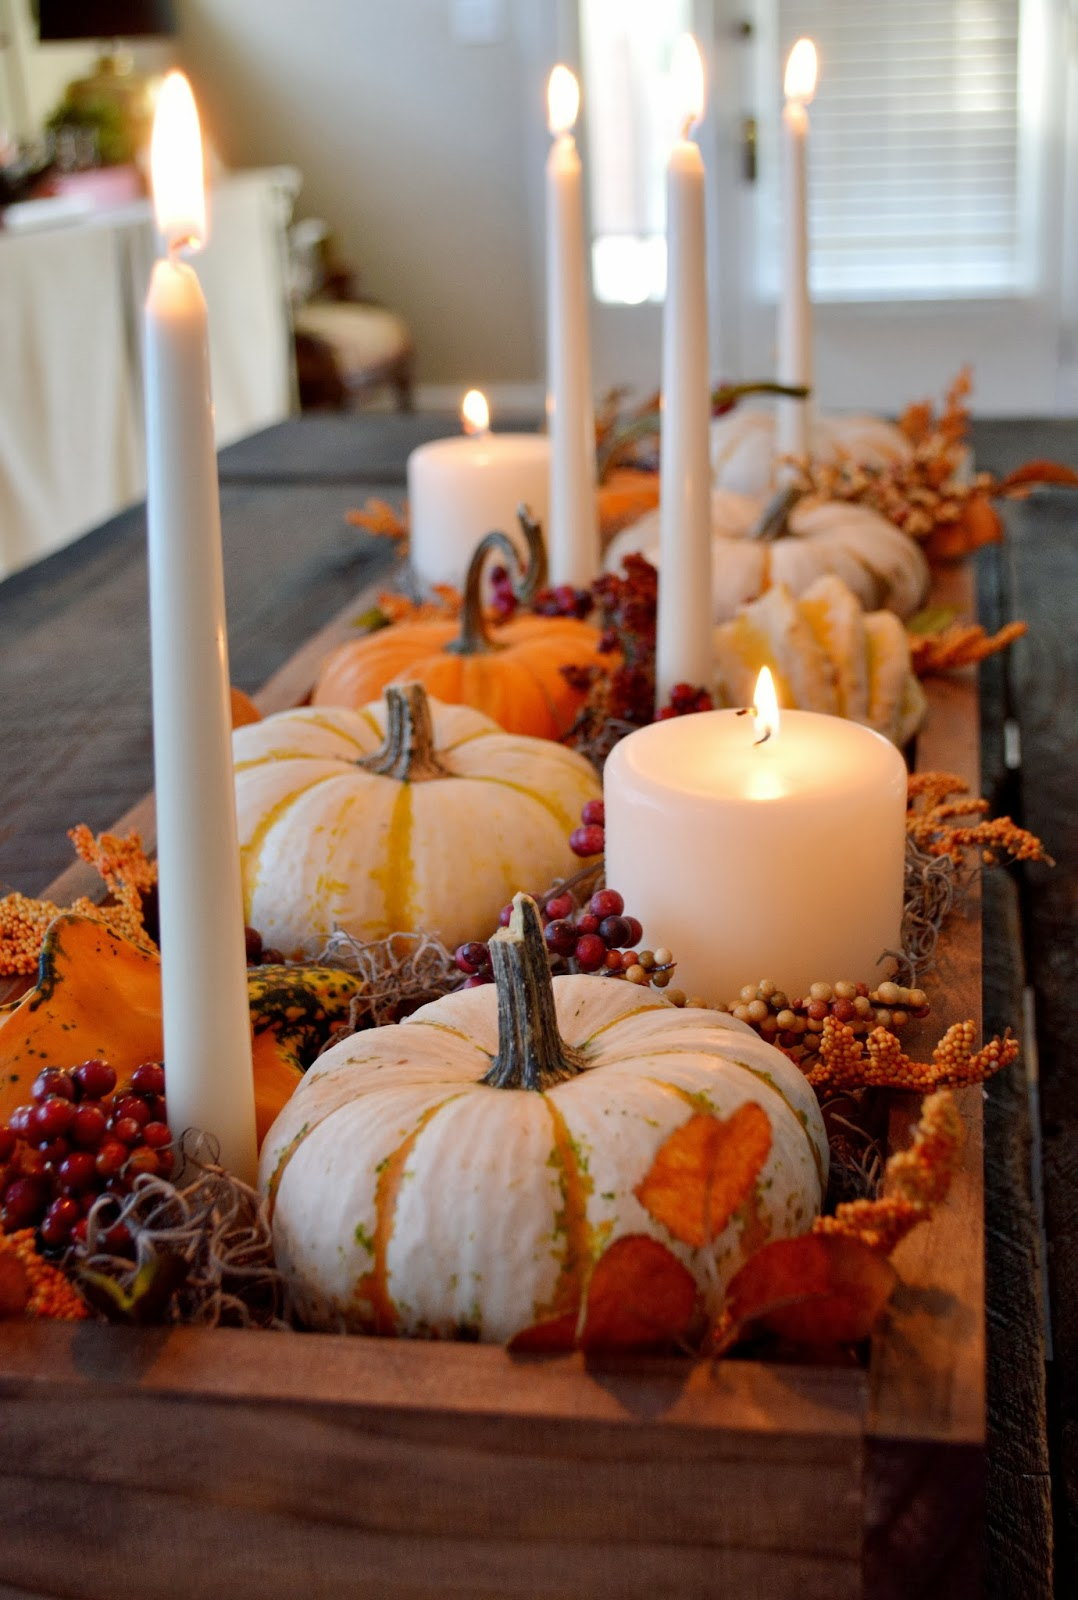 Danish taper candles and pillar candles with fall ornaments